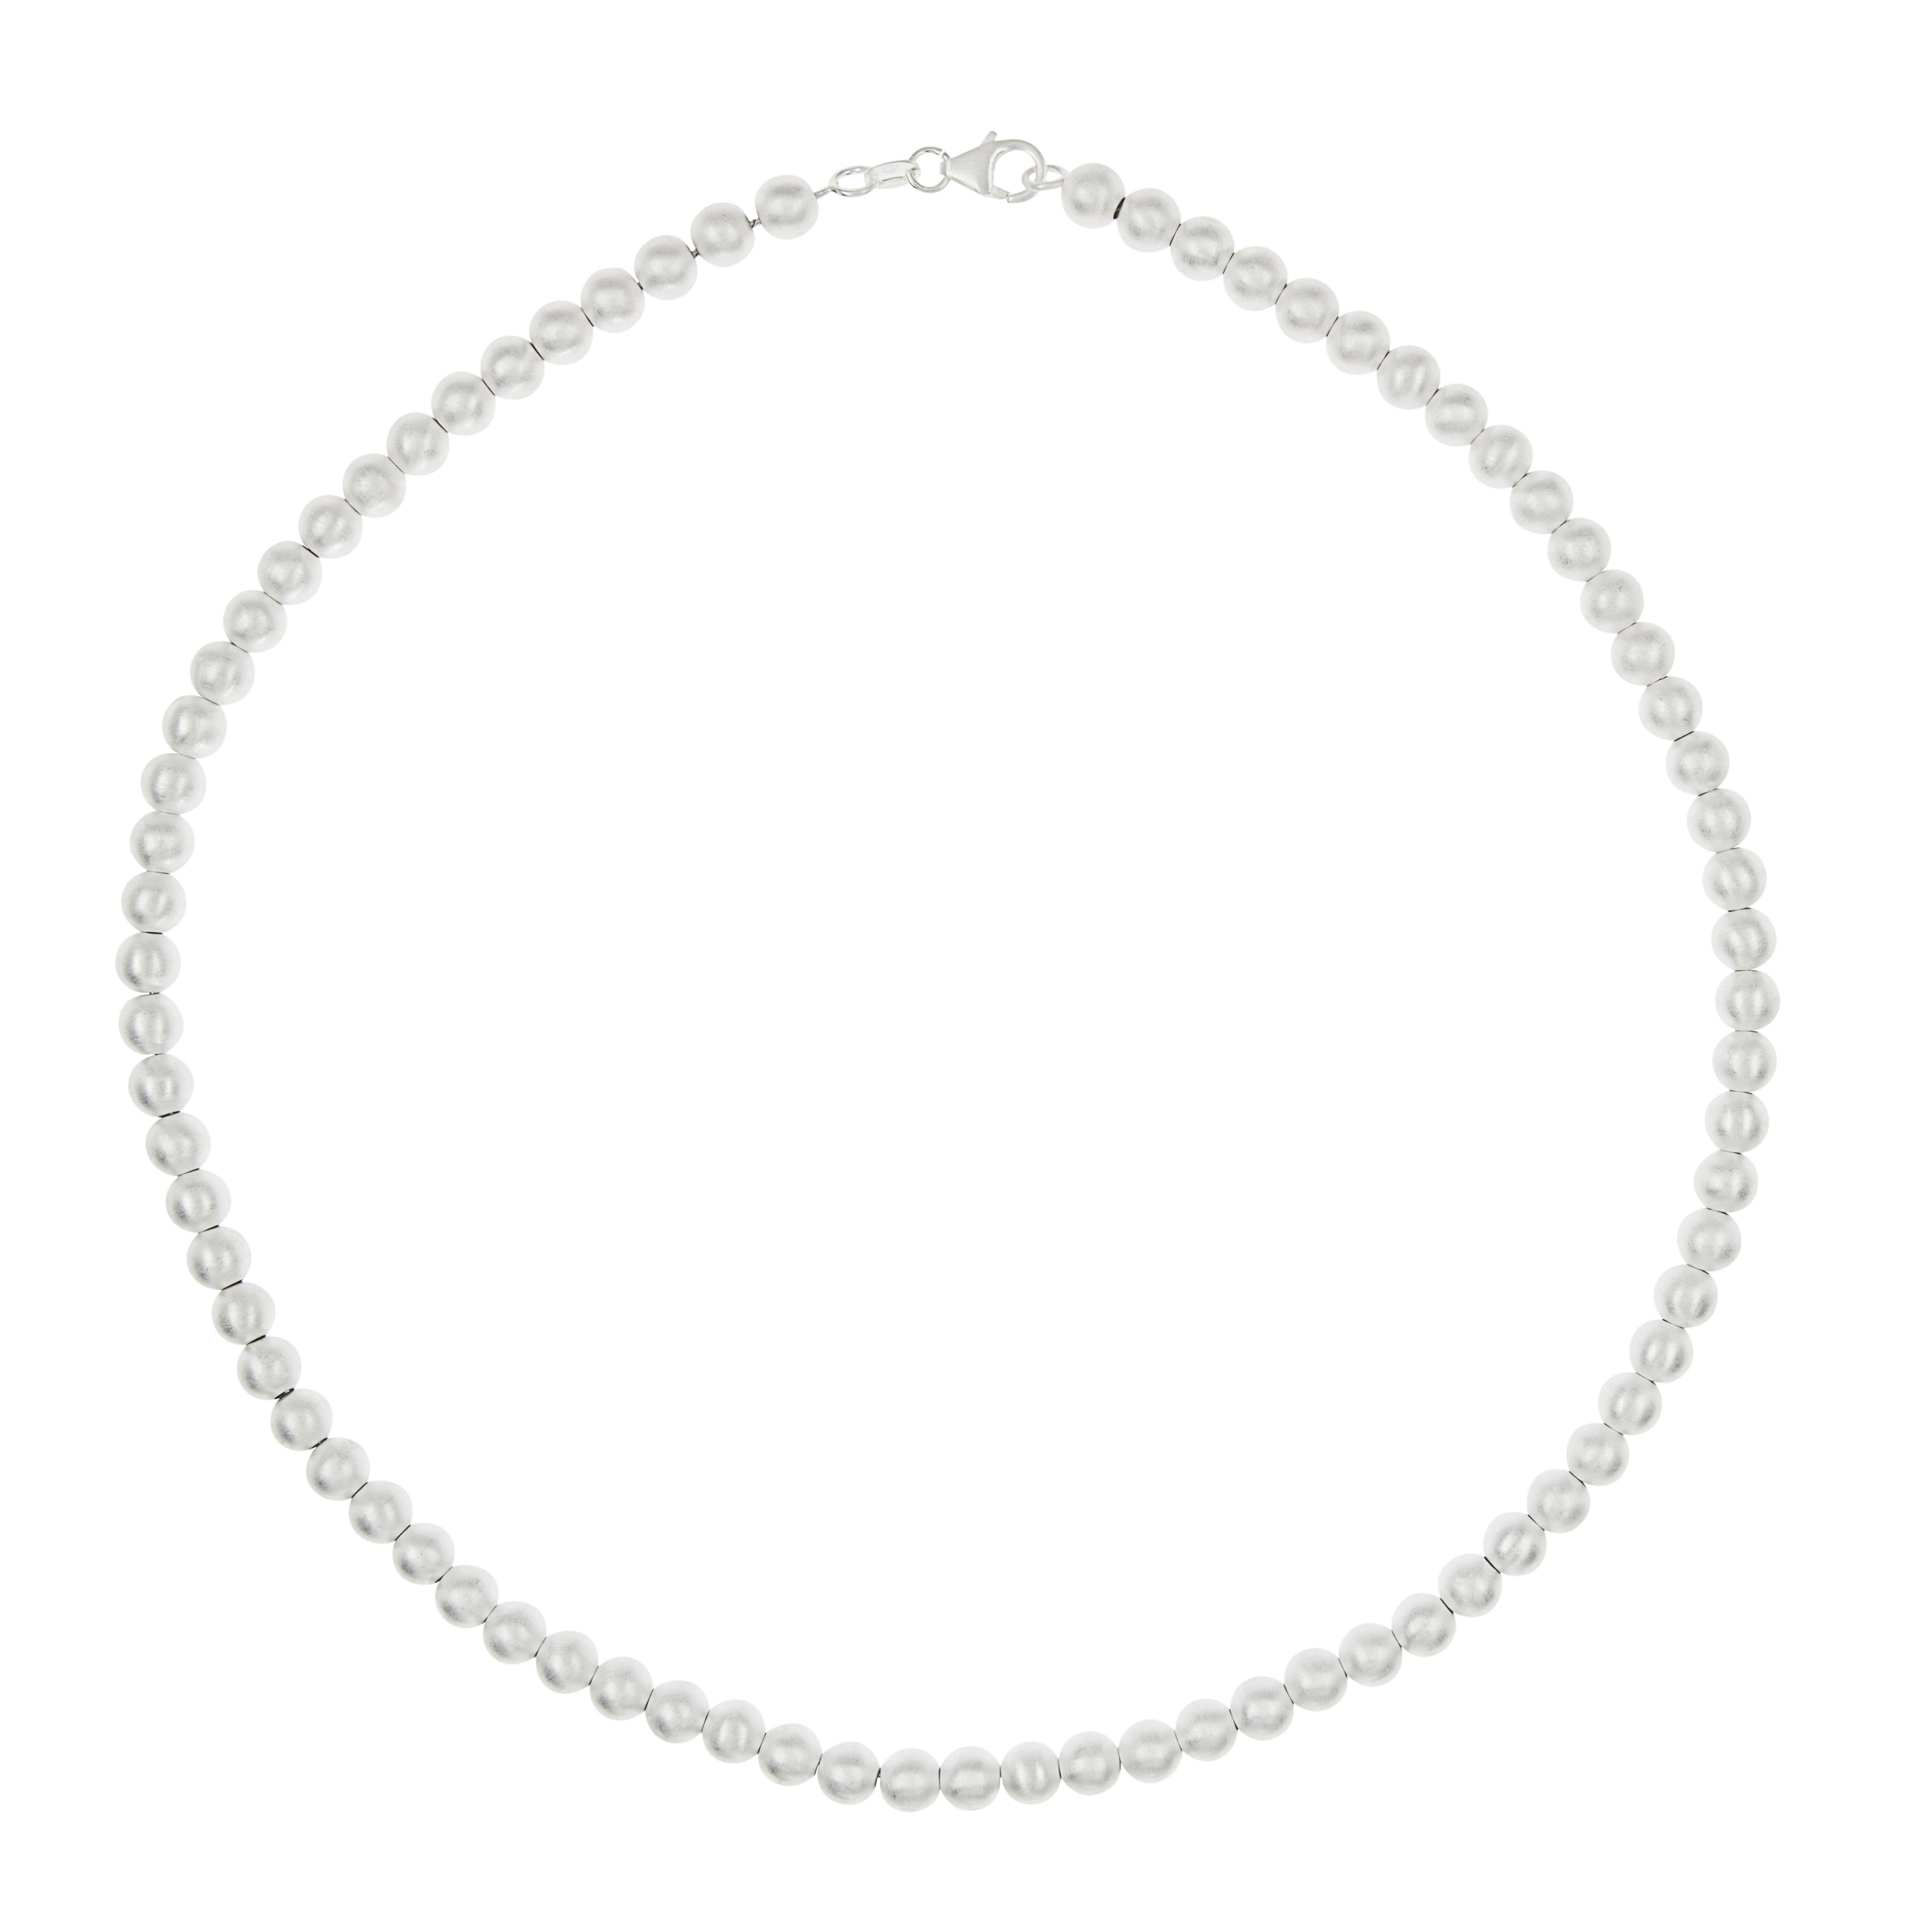 Tezer Polished Silver Ball Necklace